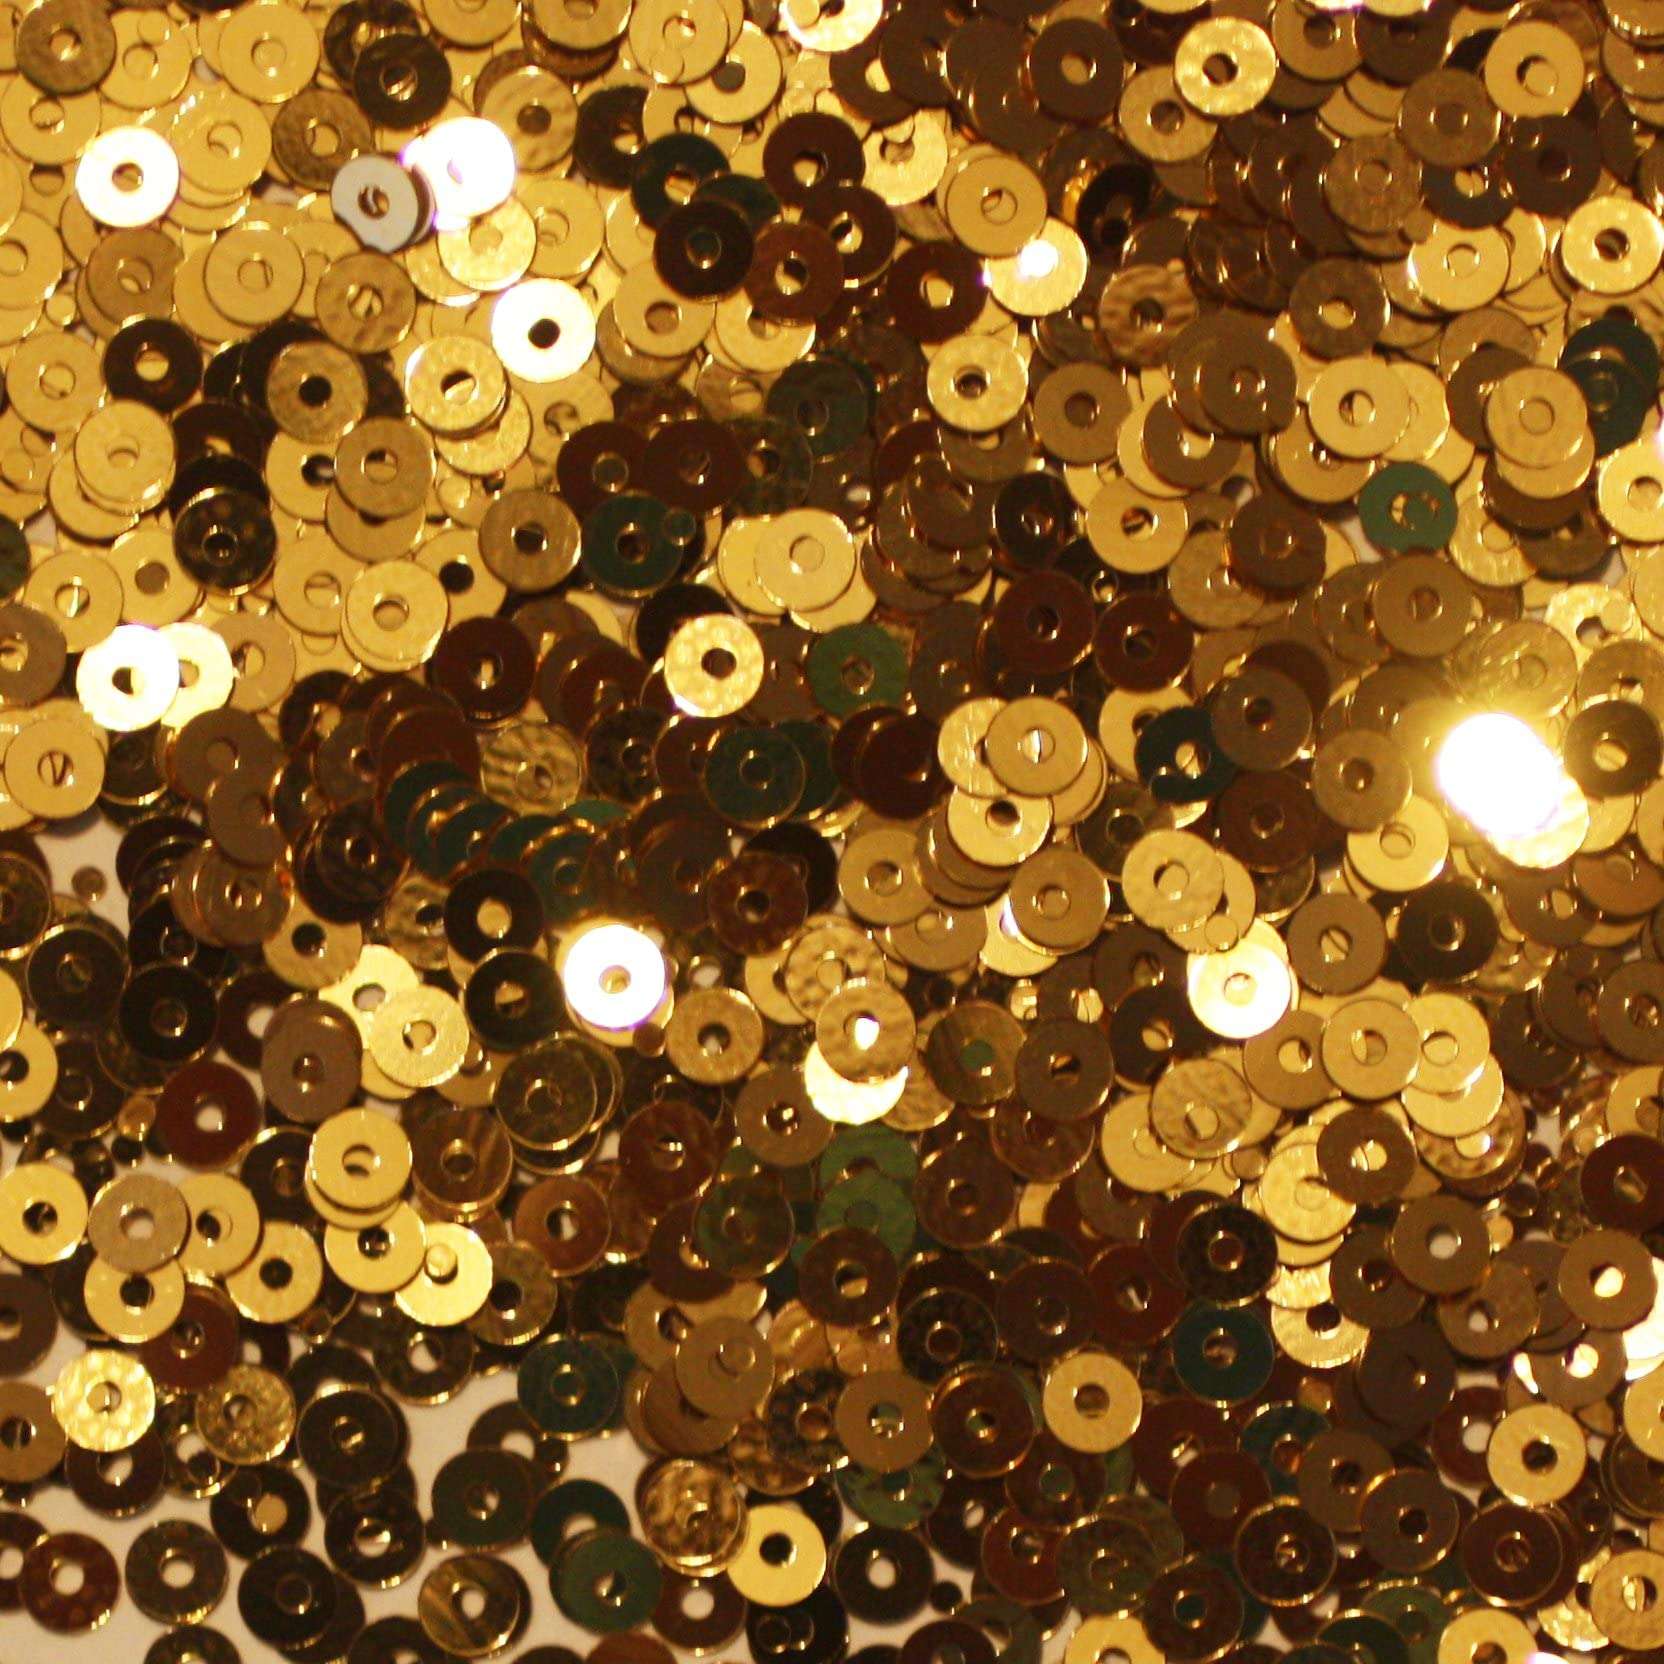 Fantasy sequins Yellow Gold Bikewheels Style Sequins 3mm 4 mm Pailettes Made in France sequins by Langlois-Martin